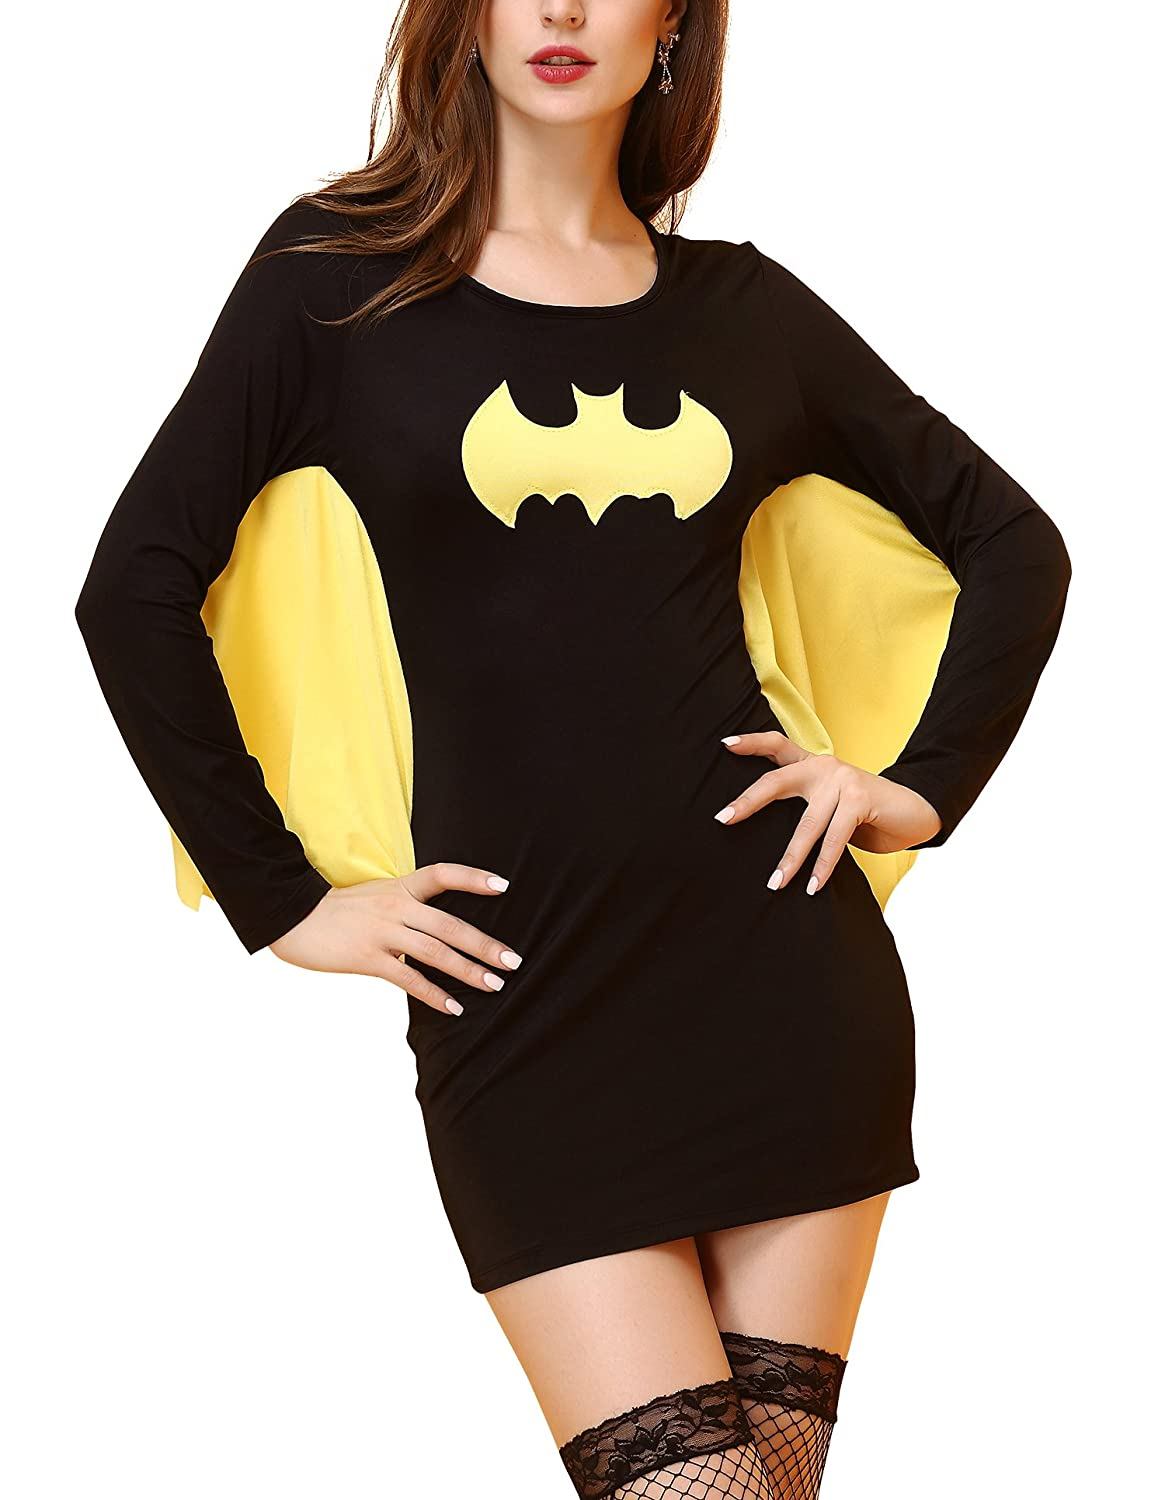 Deargirl Women's Bat Costumes Batman Sexy Hero Batgirl Adult Costume